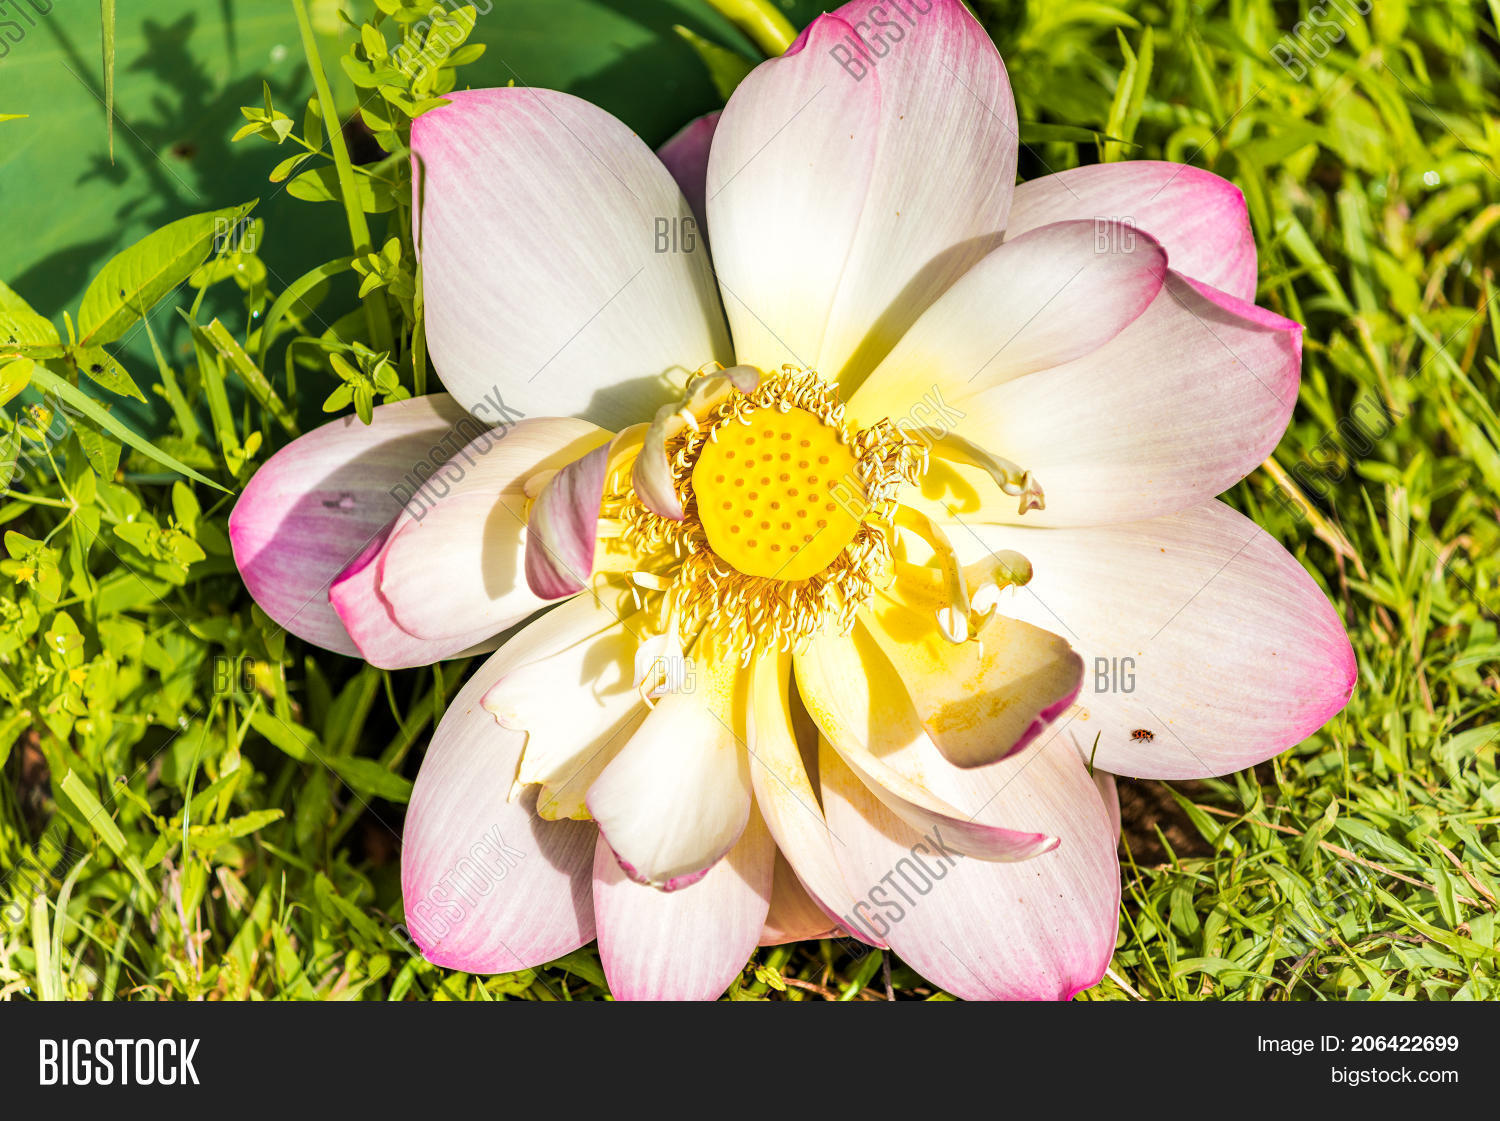 Macro flat top view image photo free trial bigstock macro flat top view down closeup of bright pink lotus flower with yellow seedpod inside izmirmasajfo